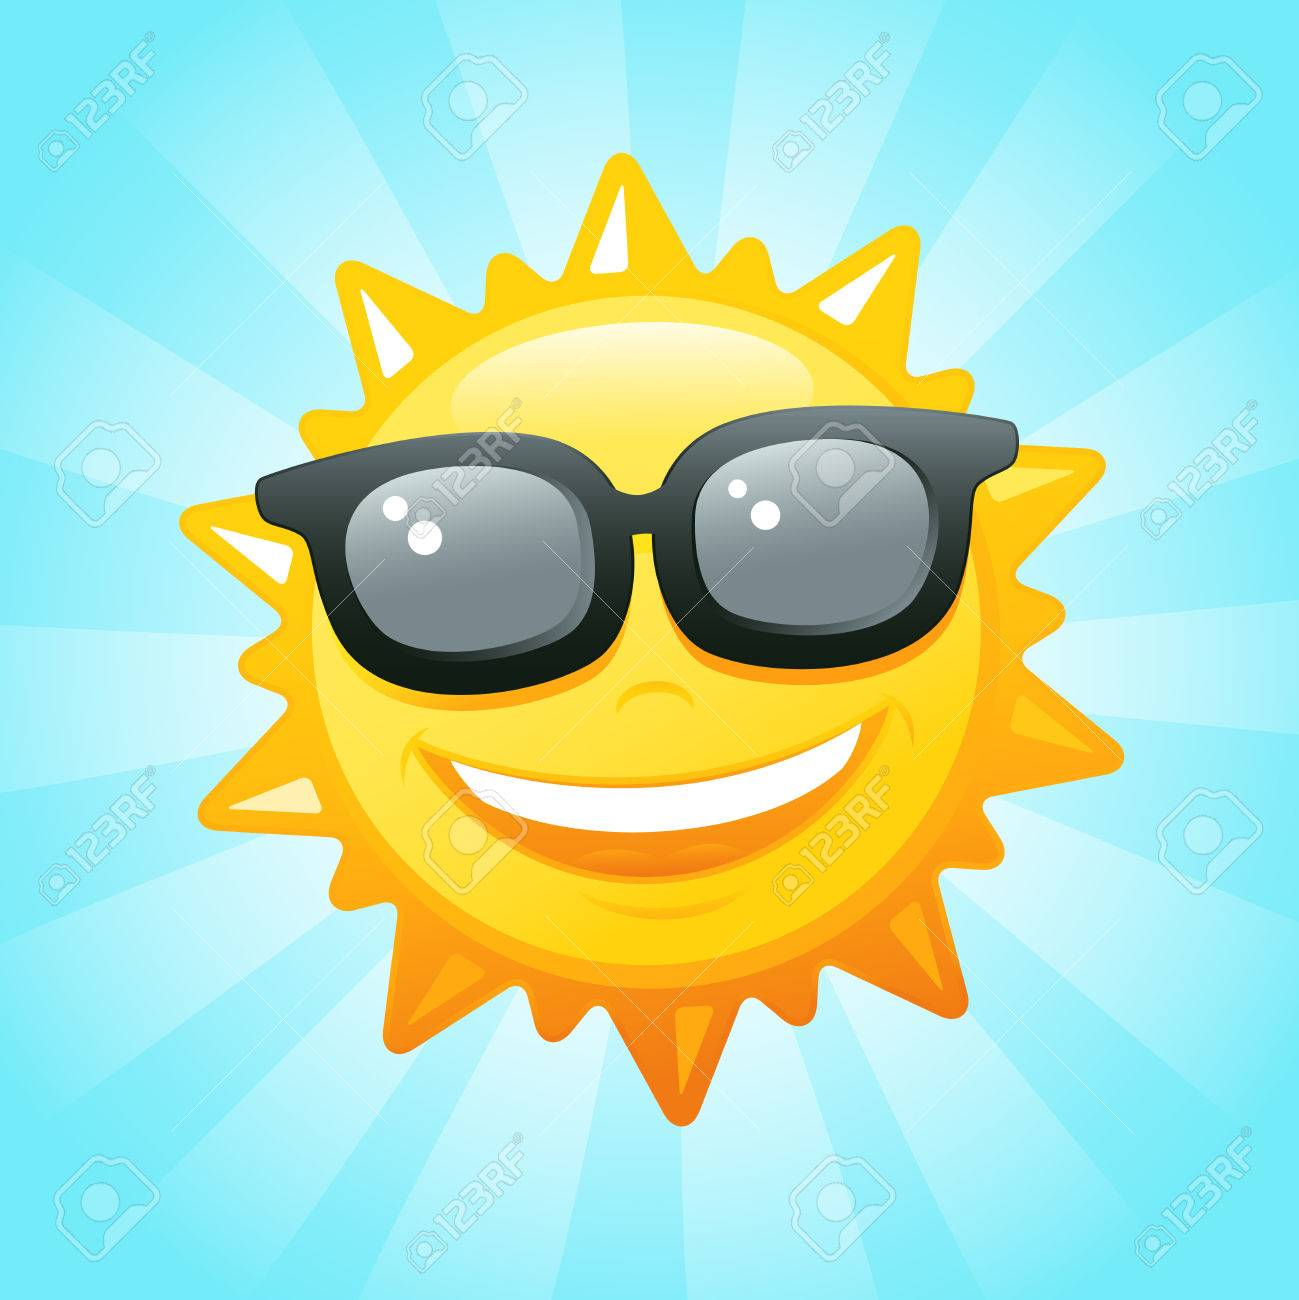 Smiling sun images - Smiling Sun Sunglasses In Sky Vector Illustration Stock Vector 22699117